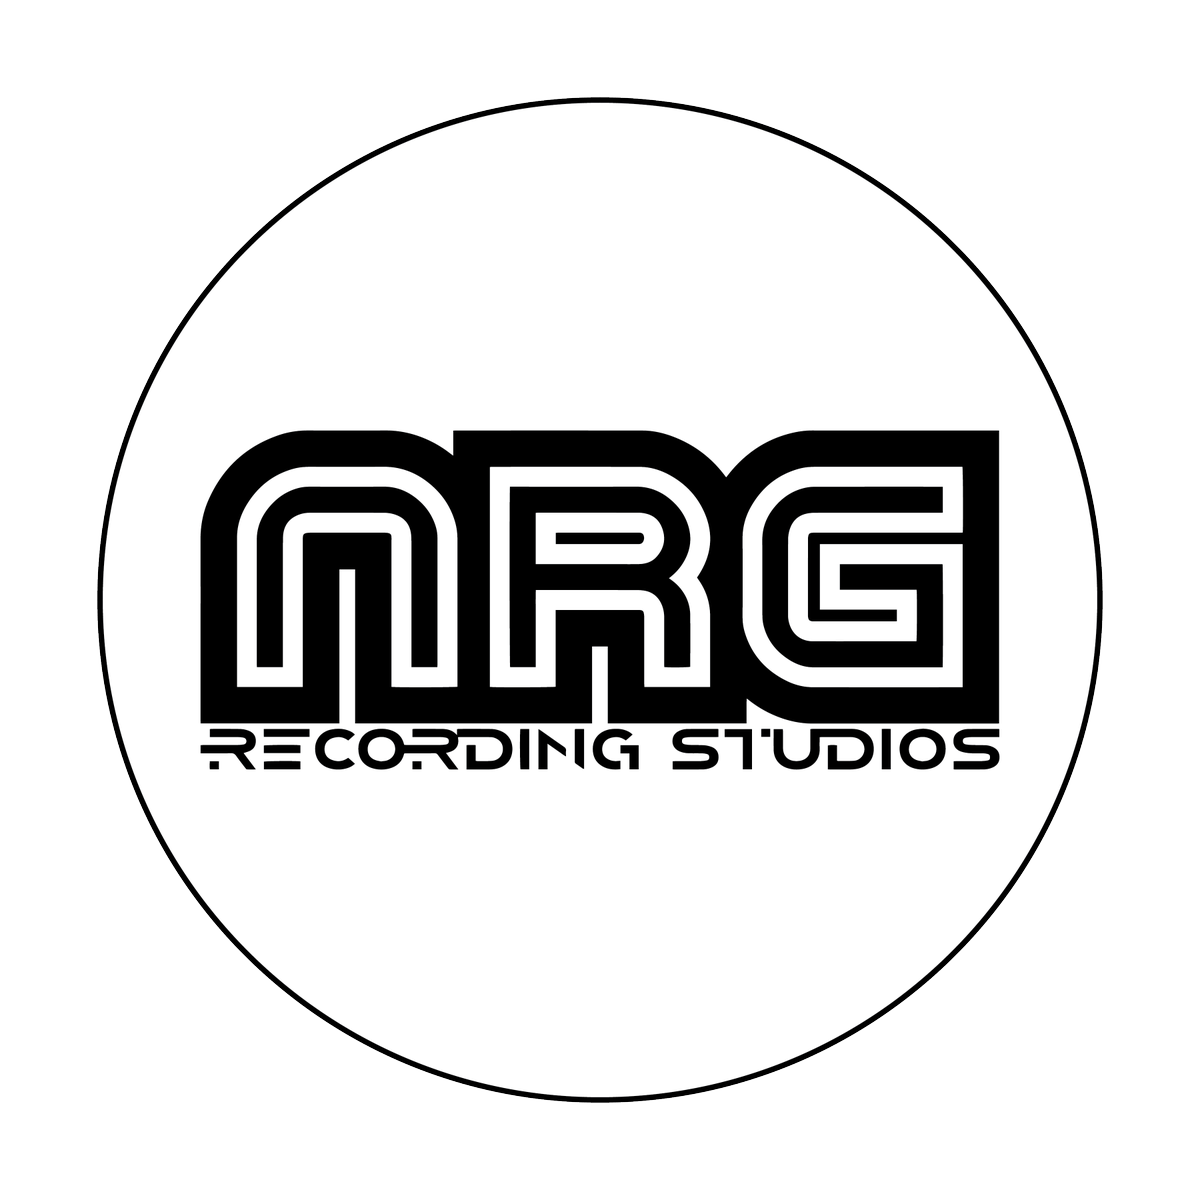 RT @NRGRecording: #ALifeWithoutMusic would be like a day without sunshine. Music is Life https://t.co/ejMfr5q1fI